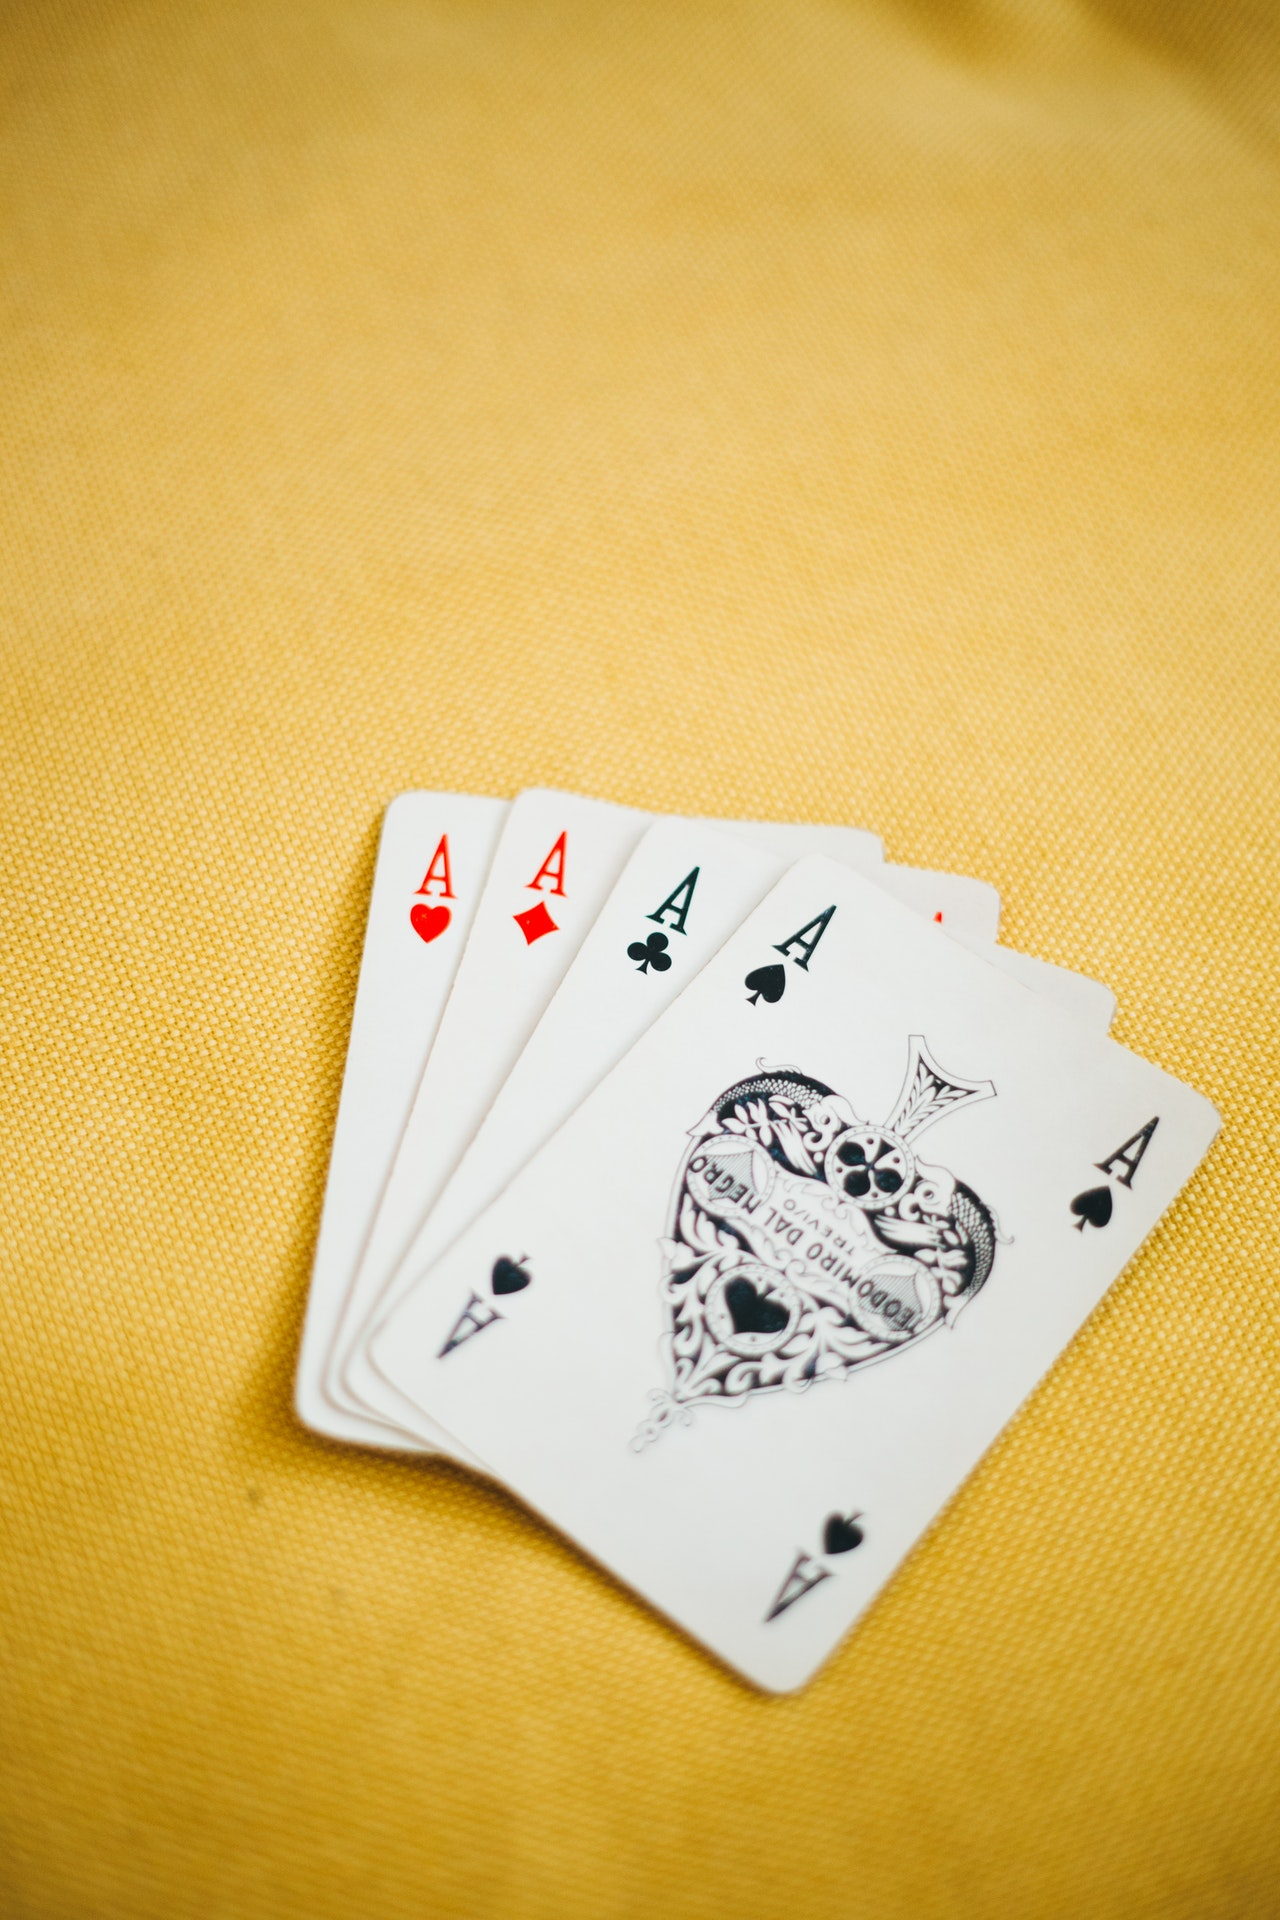 Are you better at making a poker face or reading someone's tell? -